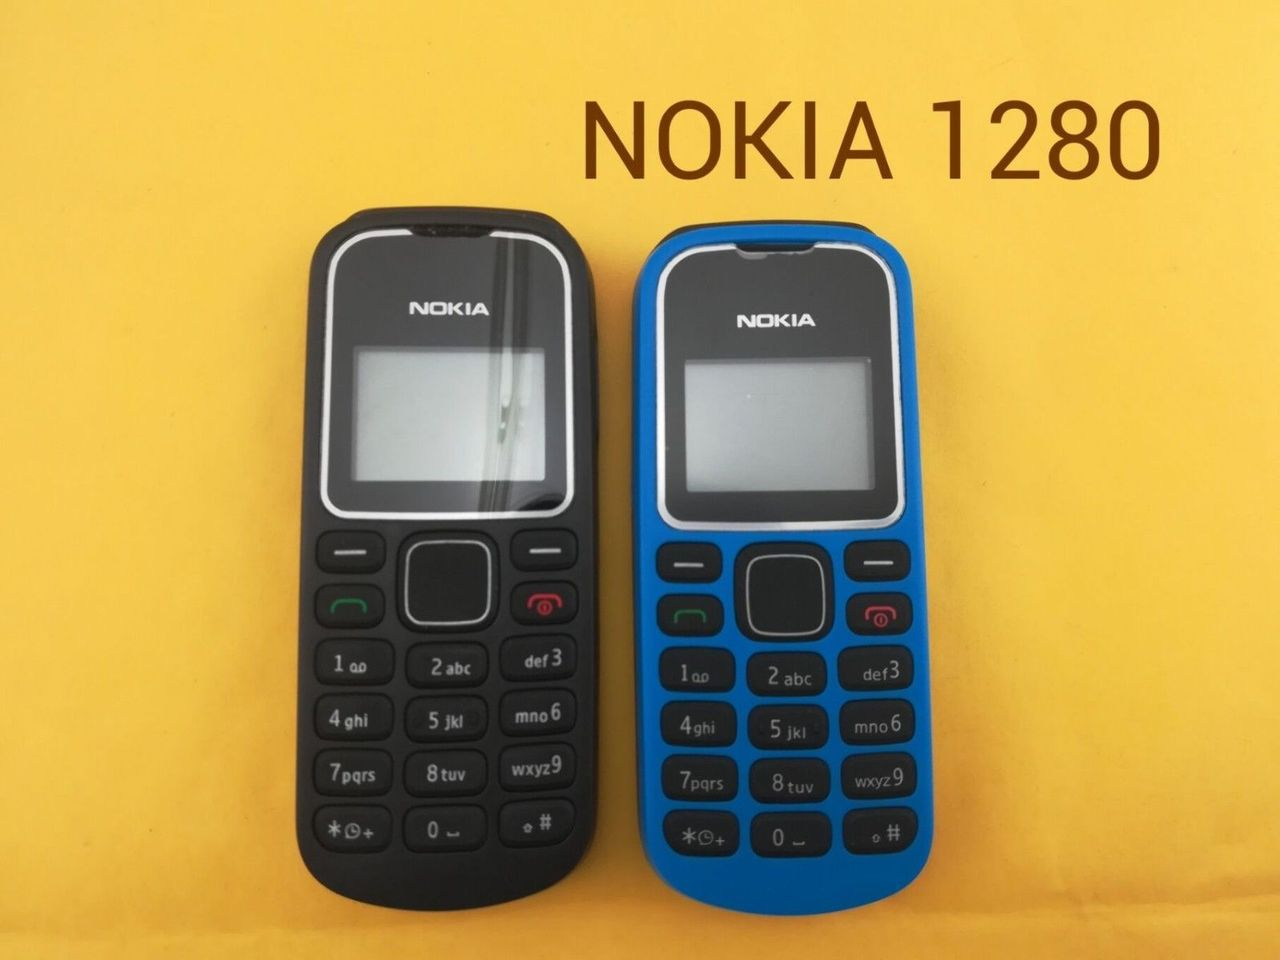 Refurbished phone mobile phone Nokia 1280 Unlocked Wholesale 1280 GSM Cheap Cell phone blue 8